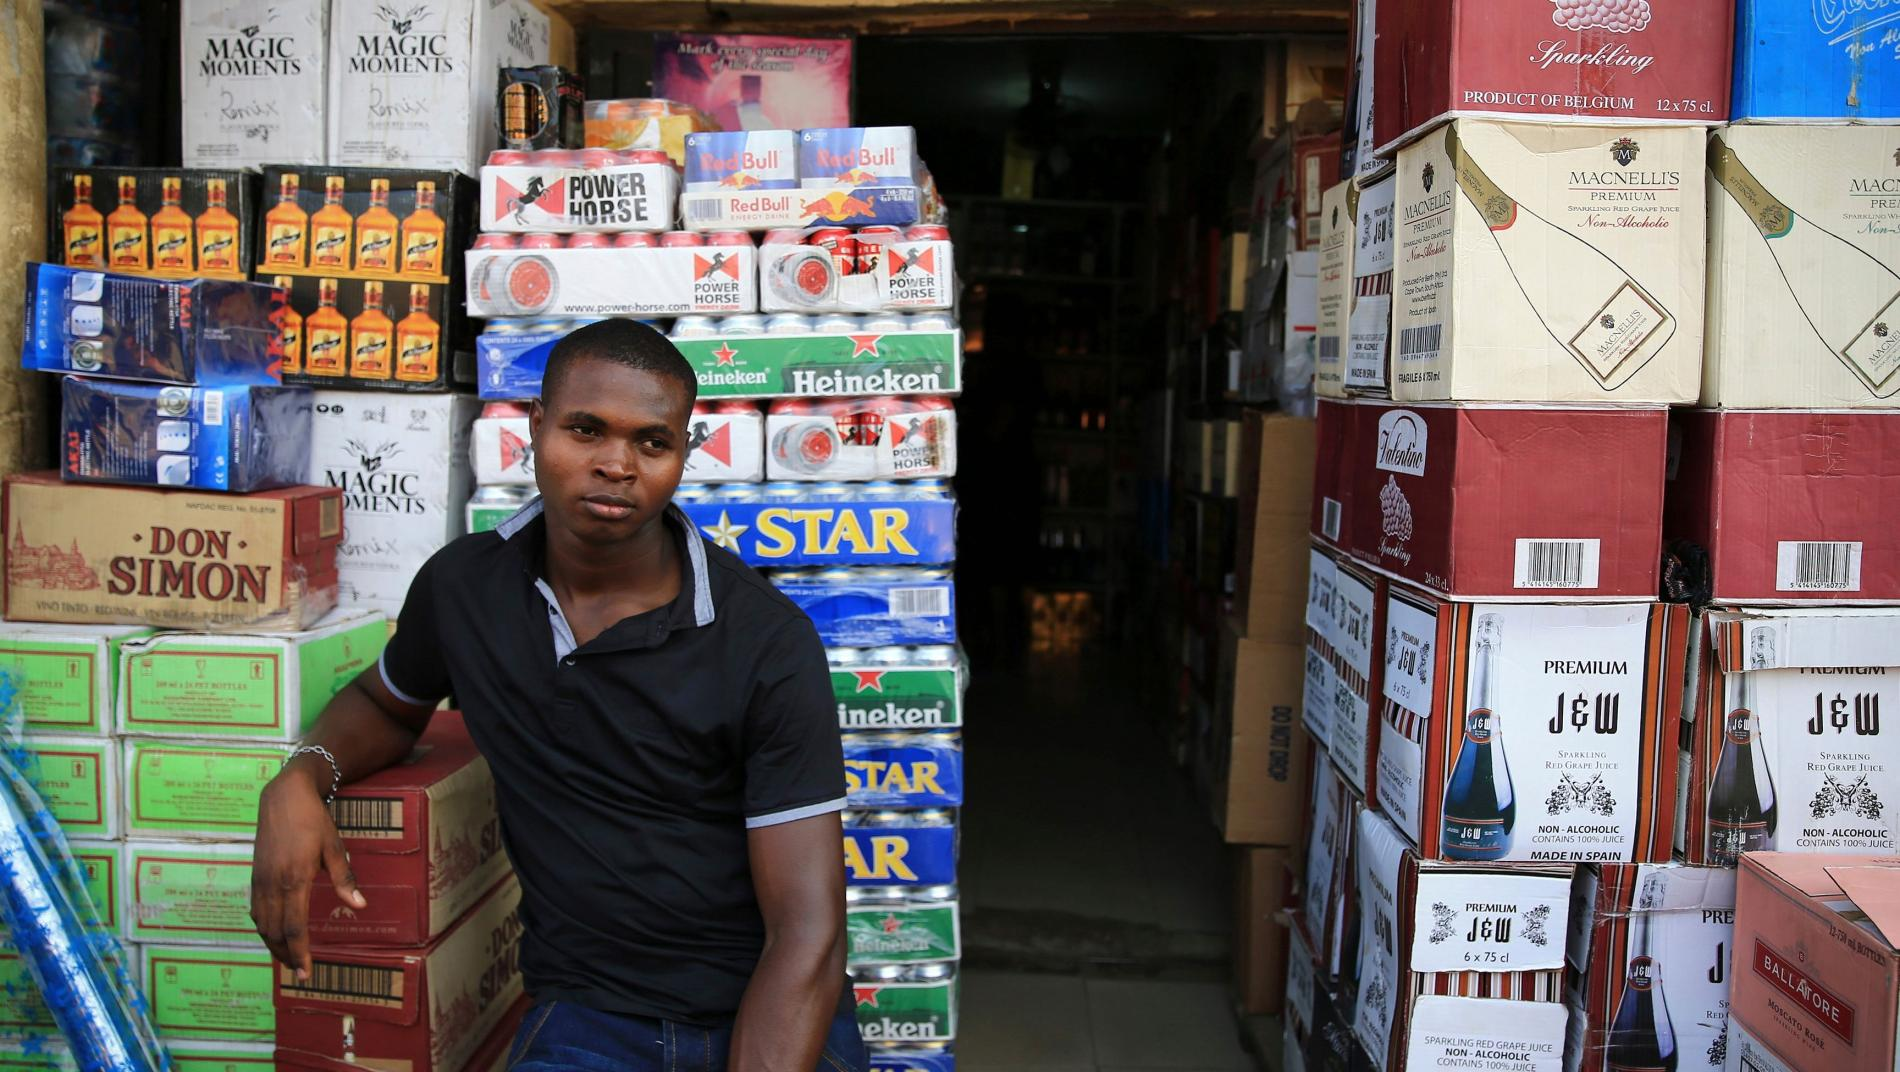 Africans pay a hefty economic price to uphold their democracies